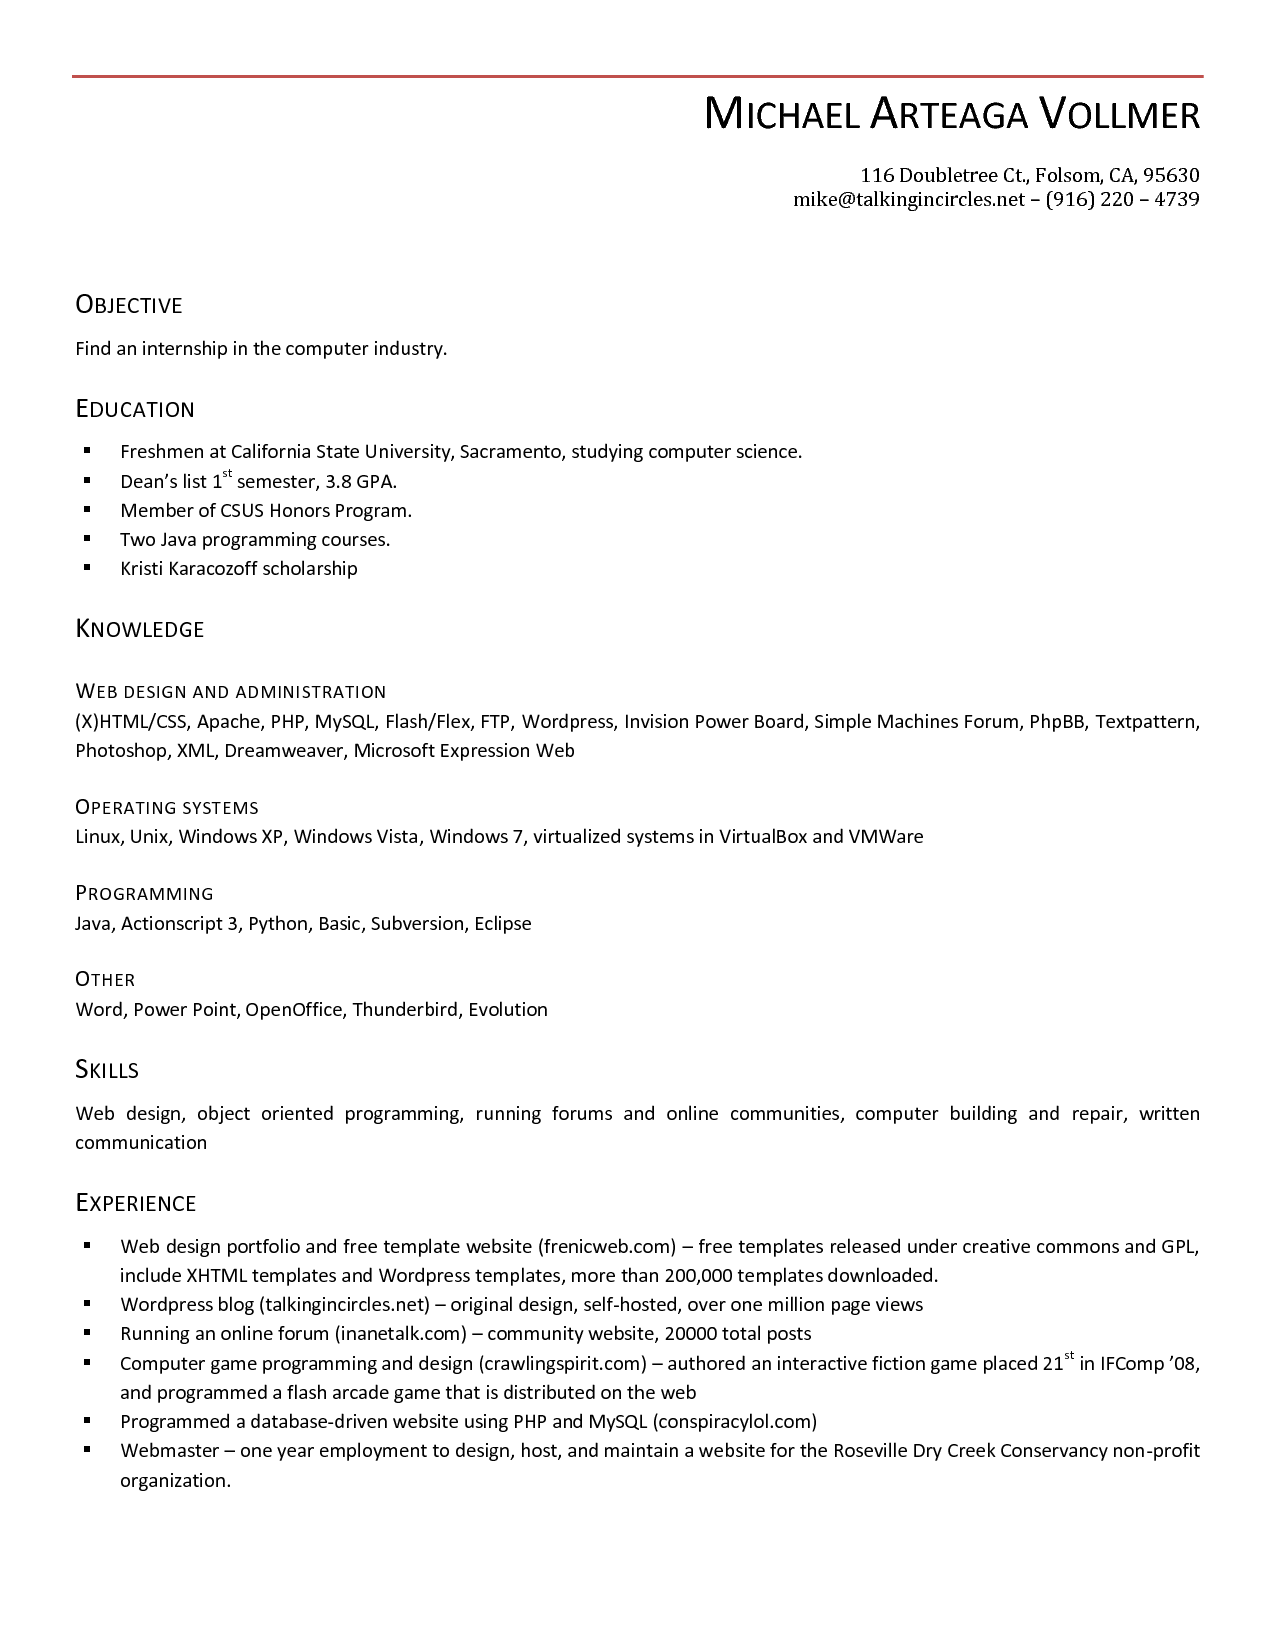 Resume Templates Free Download For Microsoft Word Legal Template Best  Create Professional Resumes Online Simple Openo  Microsoft Word Legal Template